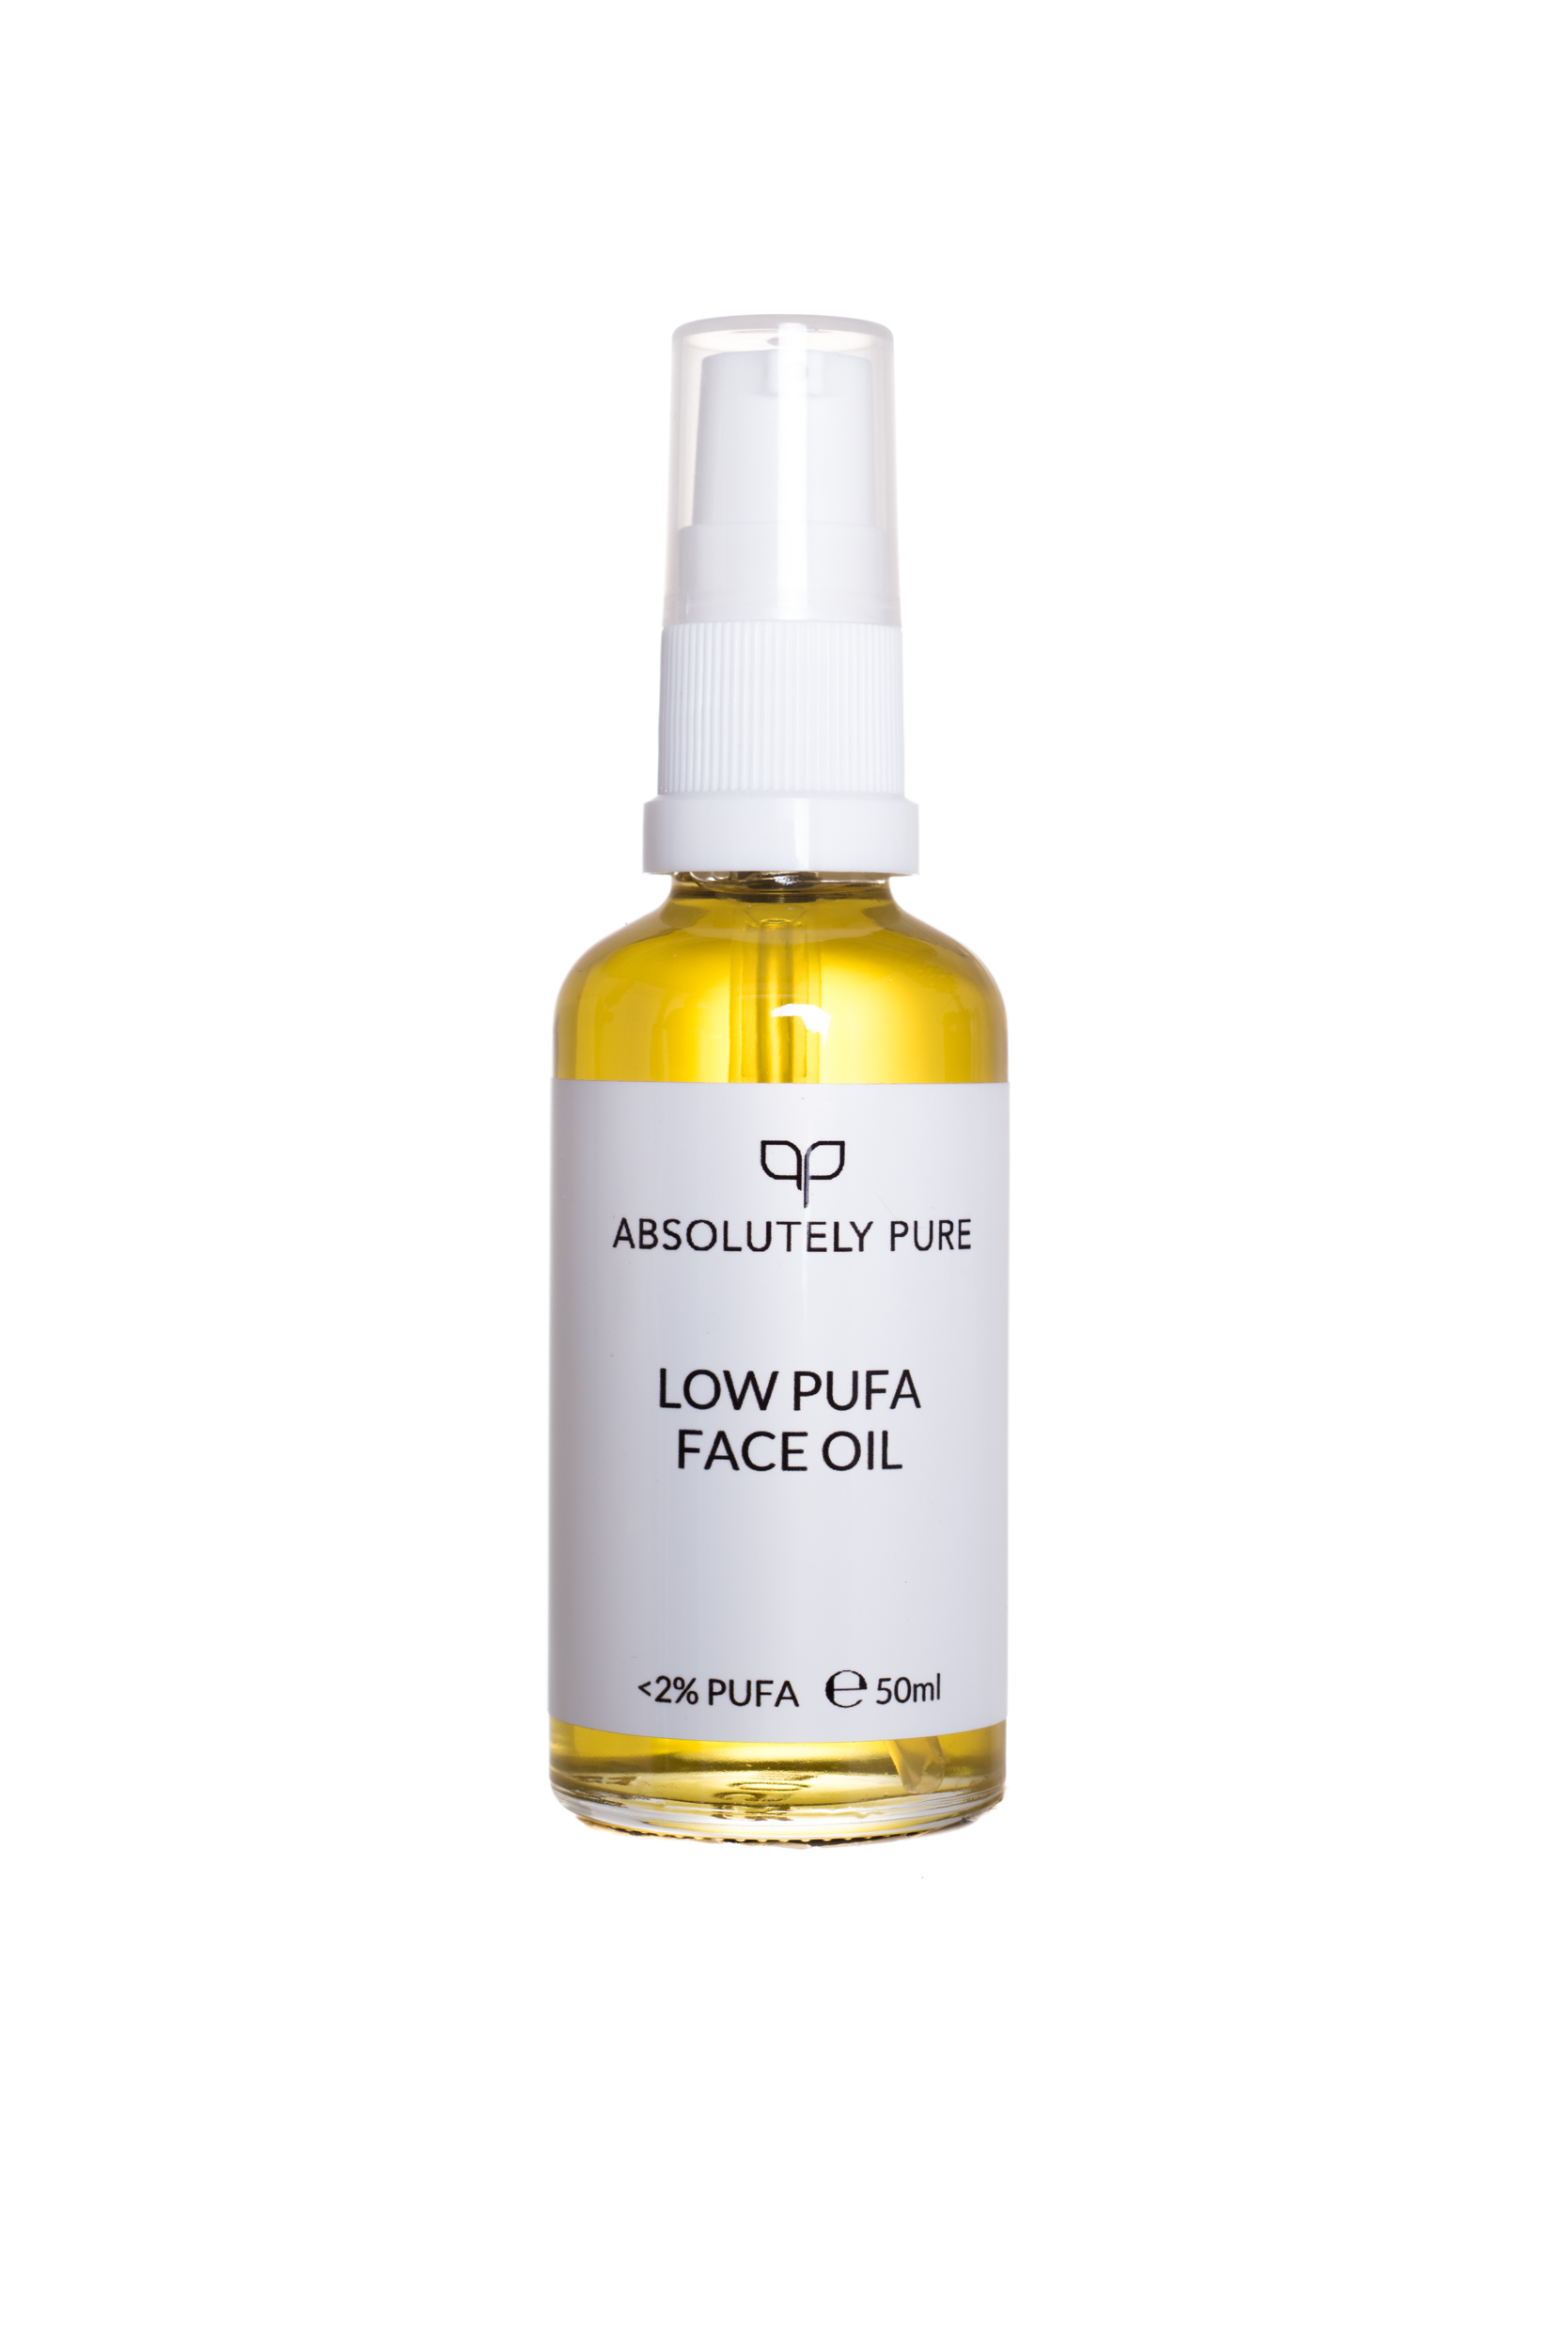 LOW PUFA FACE OIL